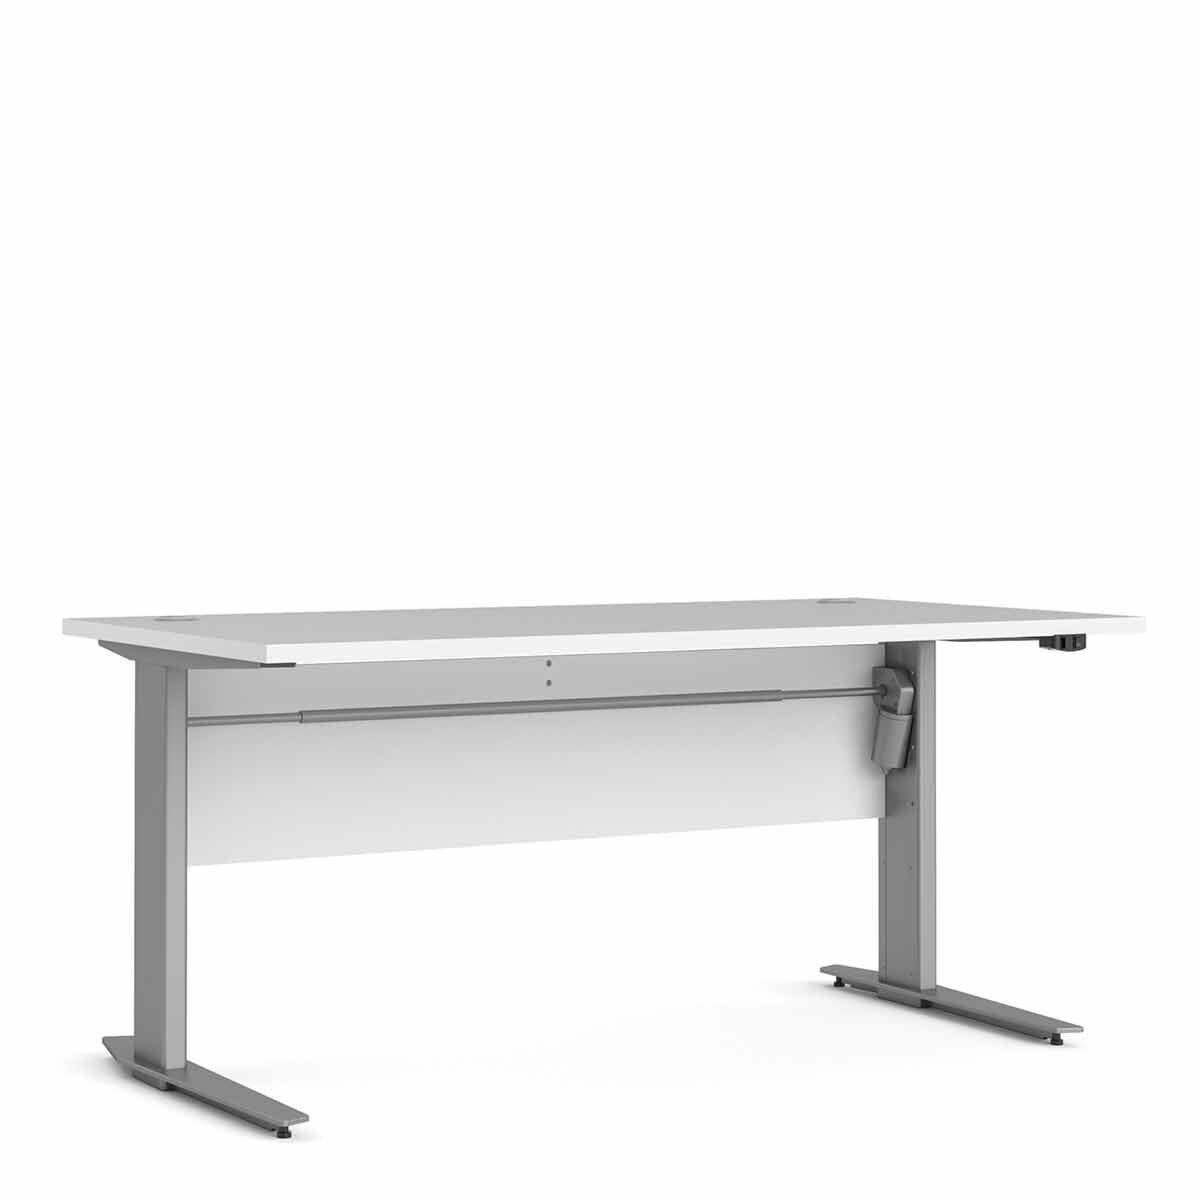 Prima Desk with Height Adjustable Silver Legs 150cm